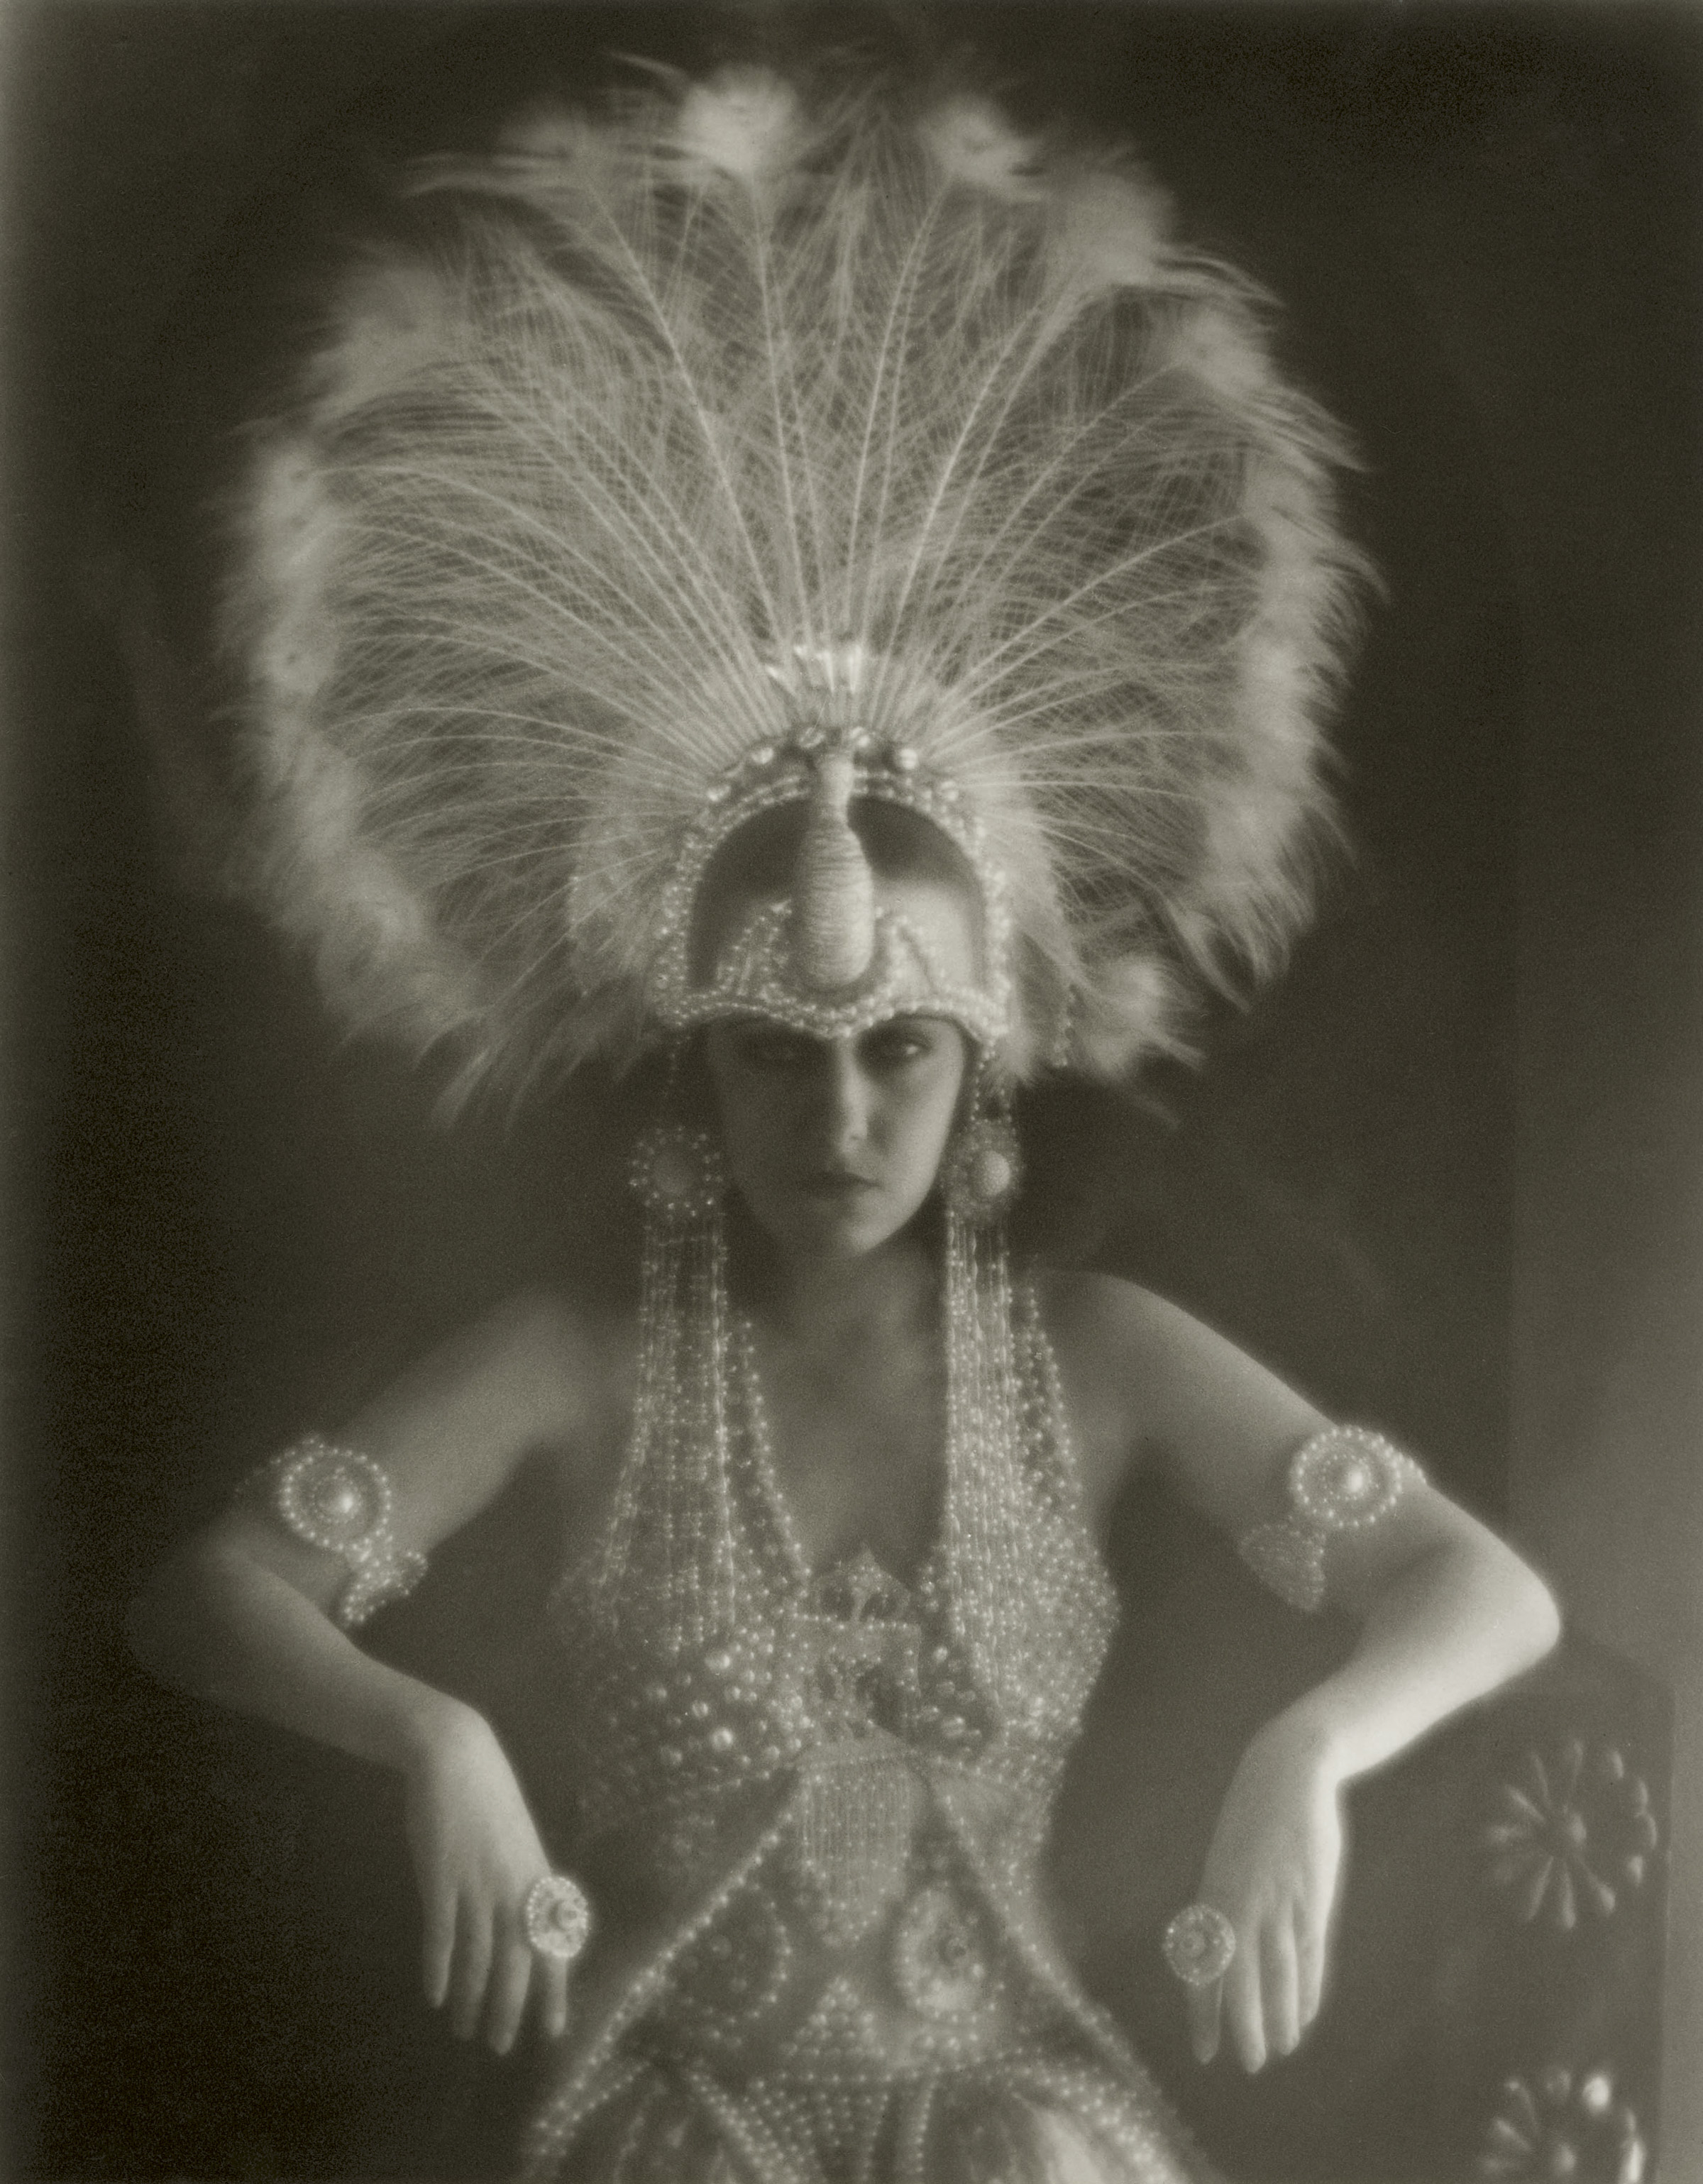 Karl Struss Gloria Swanson in Male and Female, Regie: Cecil B. DeMille, 1919 © The John Kobal Foundation